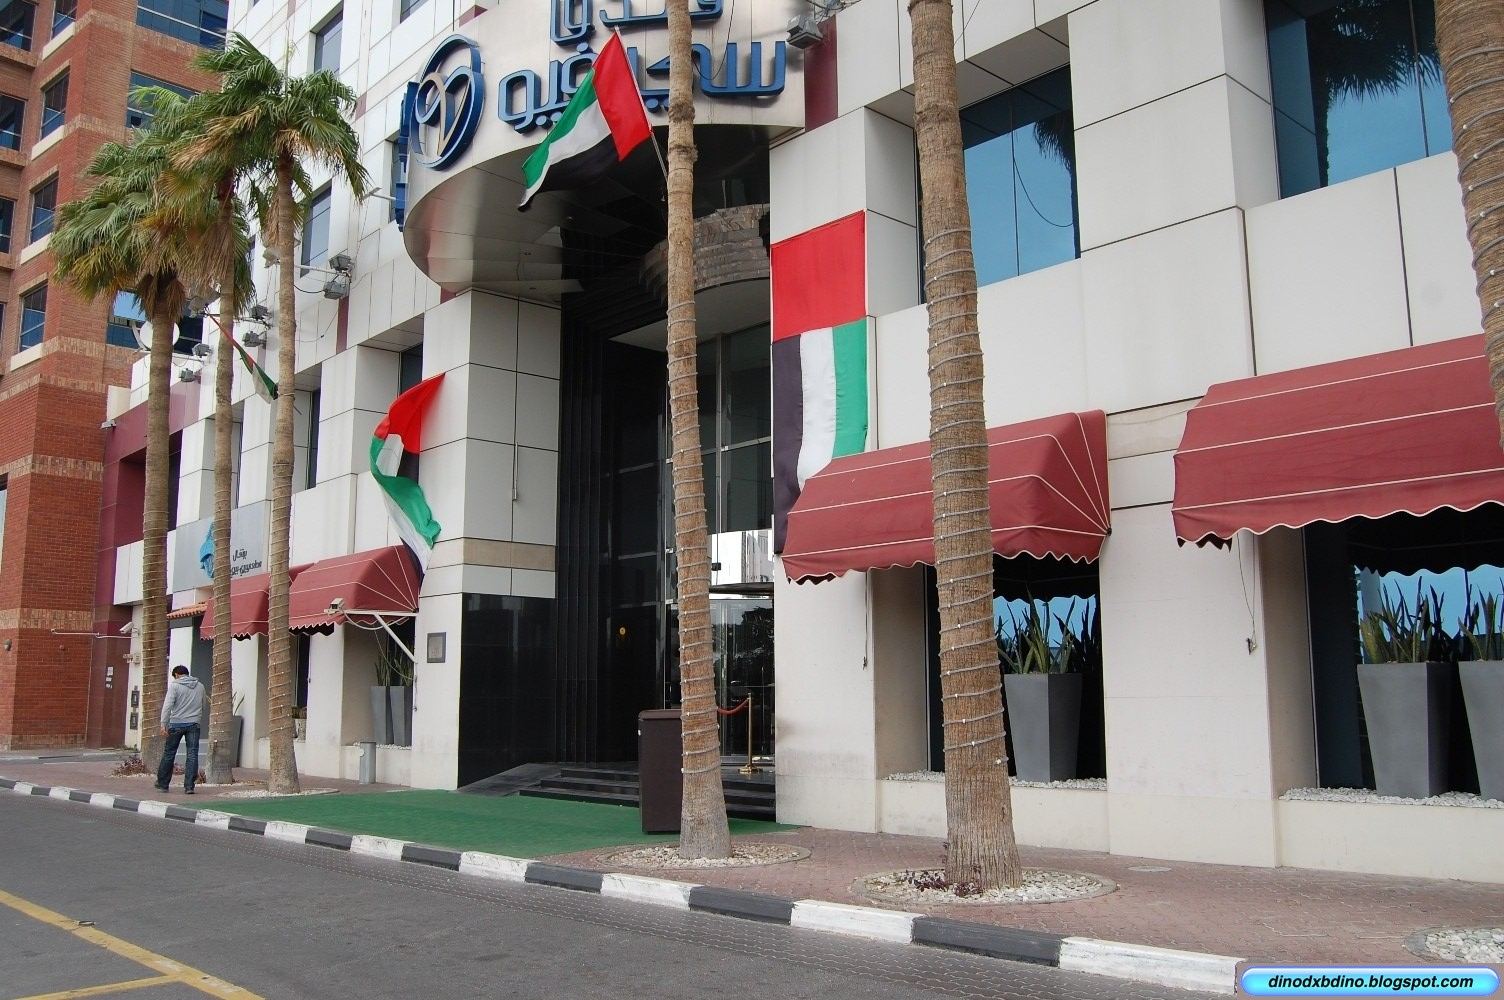 Rooms: SEAVIEW HOTEL AL MINA ROAD, BURDUBAI DUBAI UNITED ARAB